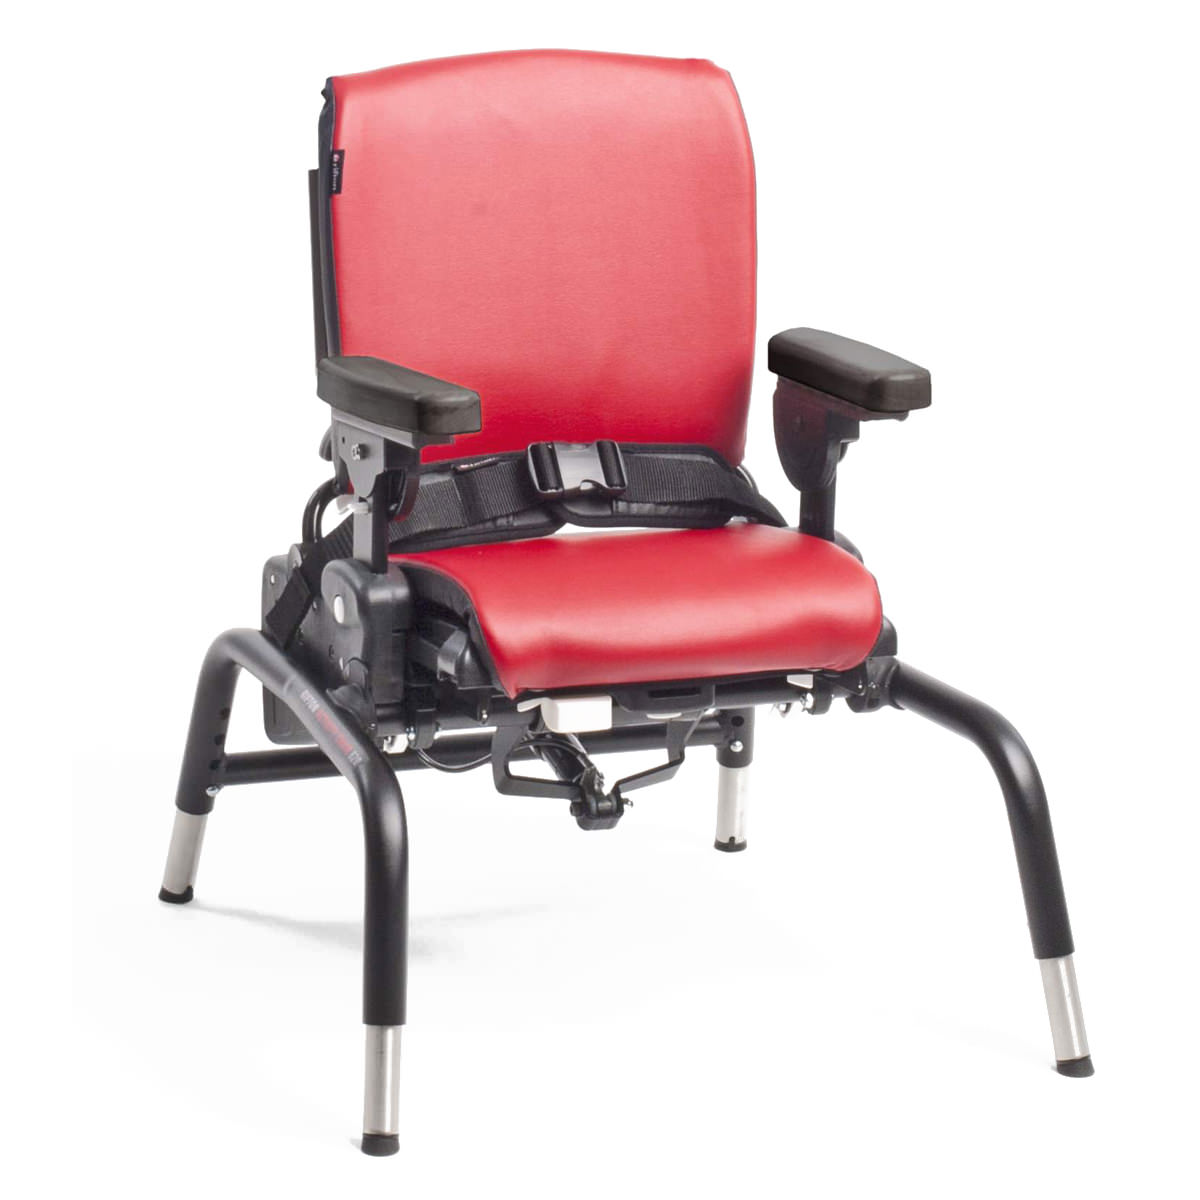 Rifton small activity chair with standard base